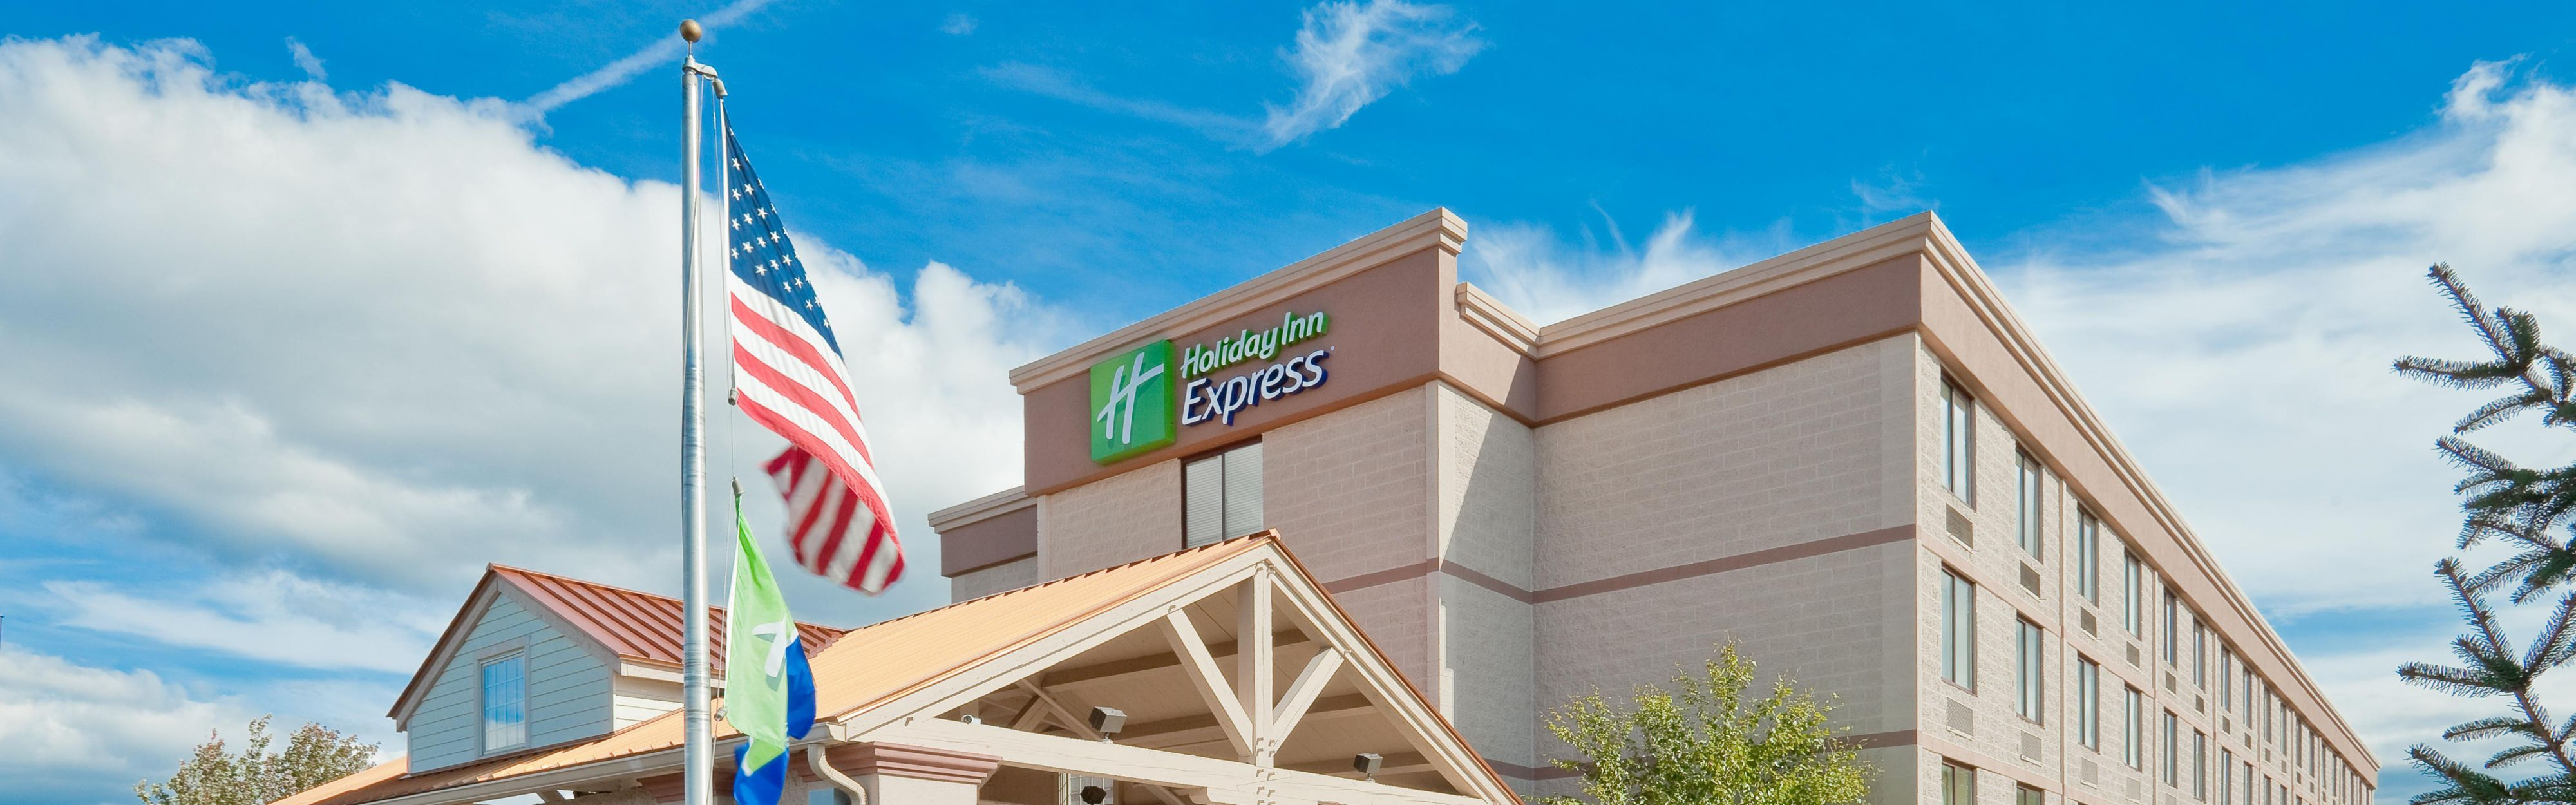 Holiday Inn Express Exton - Great Valley image 0